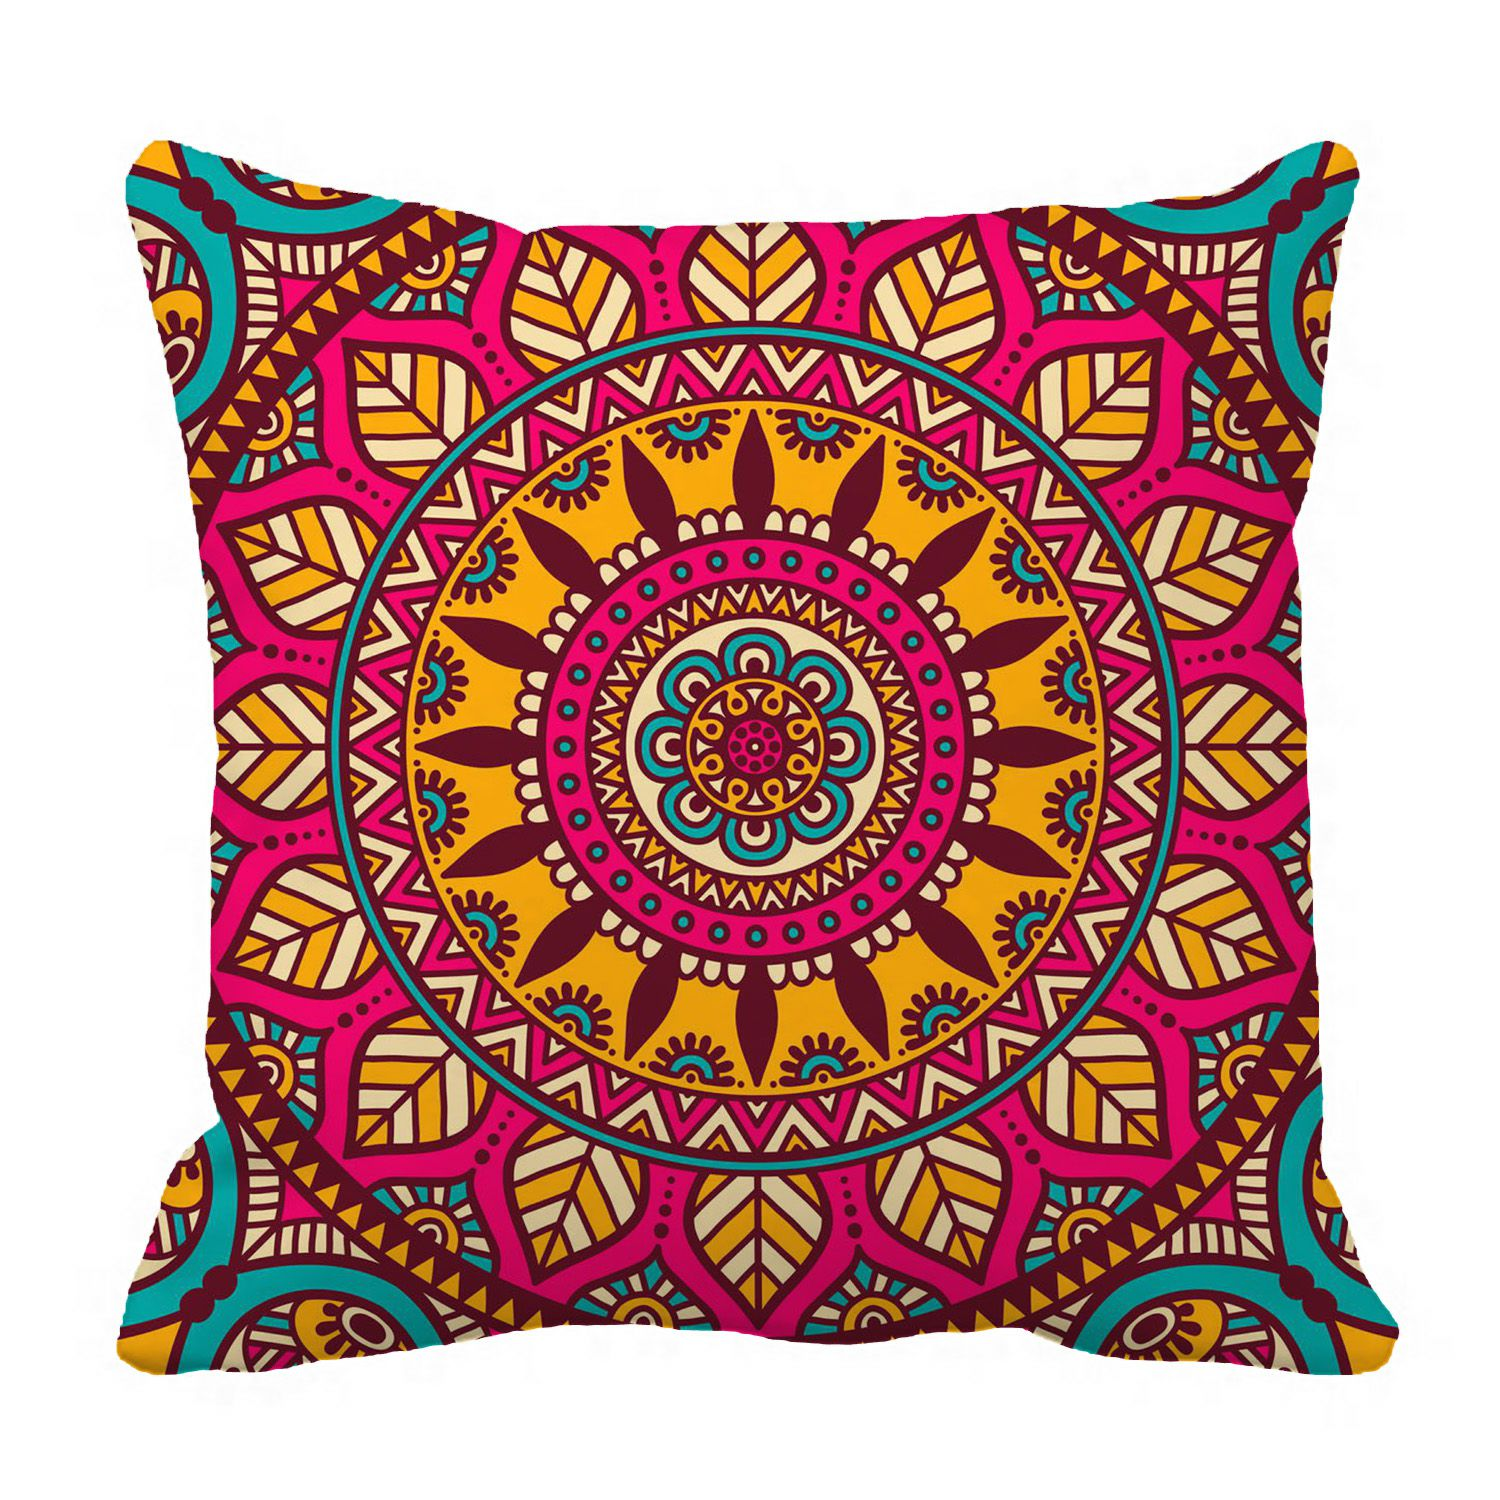 phfzk indian vintage style pillow case floral mandala bohemian pillowcase throw pillow cushion cover two sides size 18x18 inches